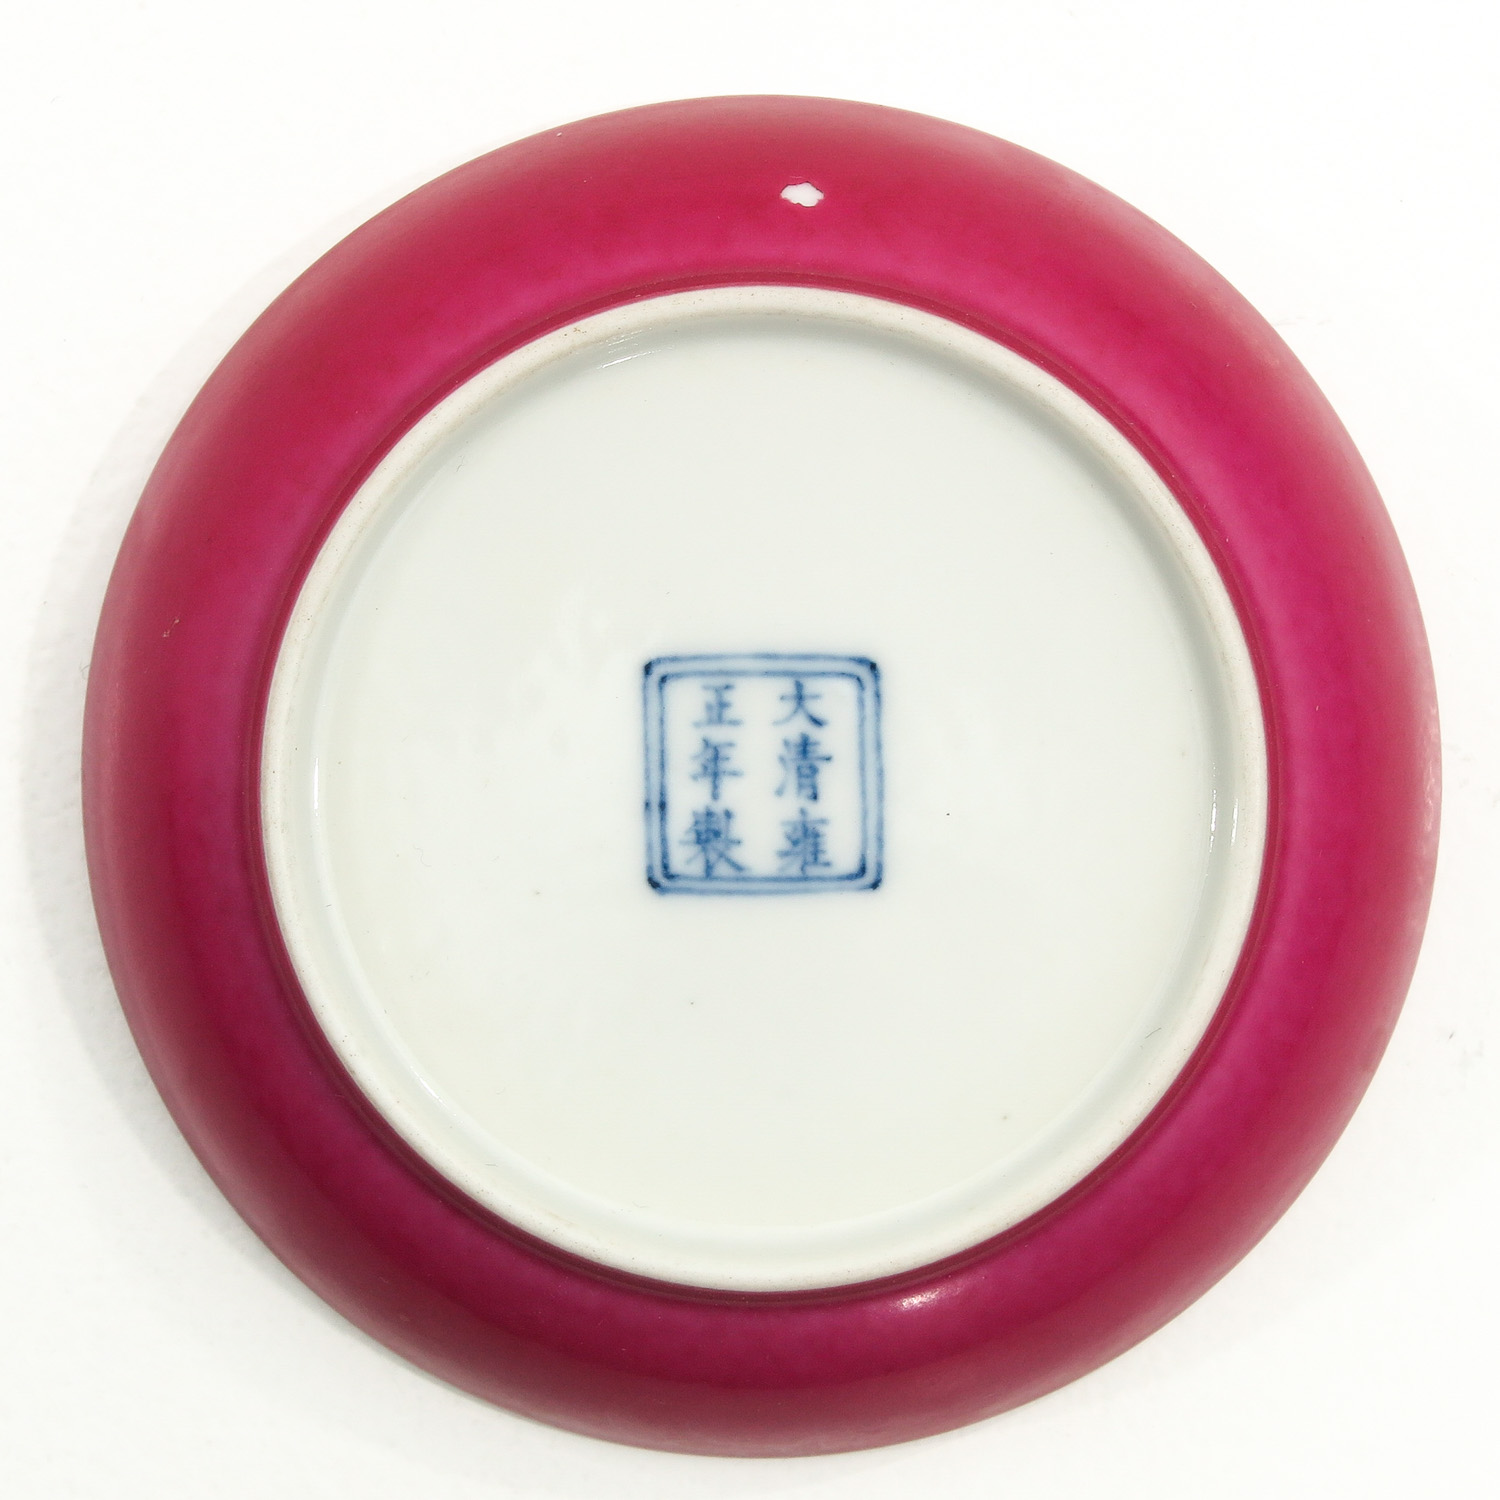 A Small Ruby Glaze Dish - Image 2 of 5